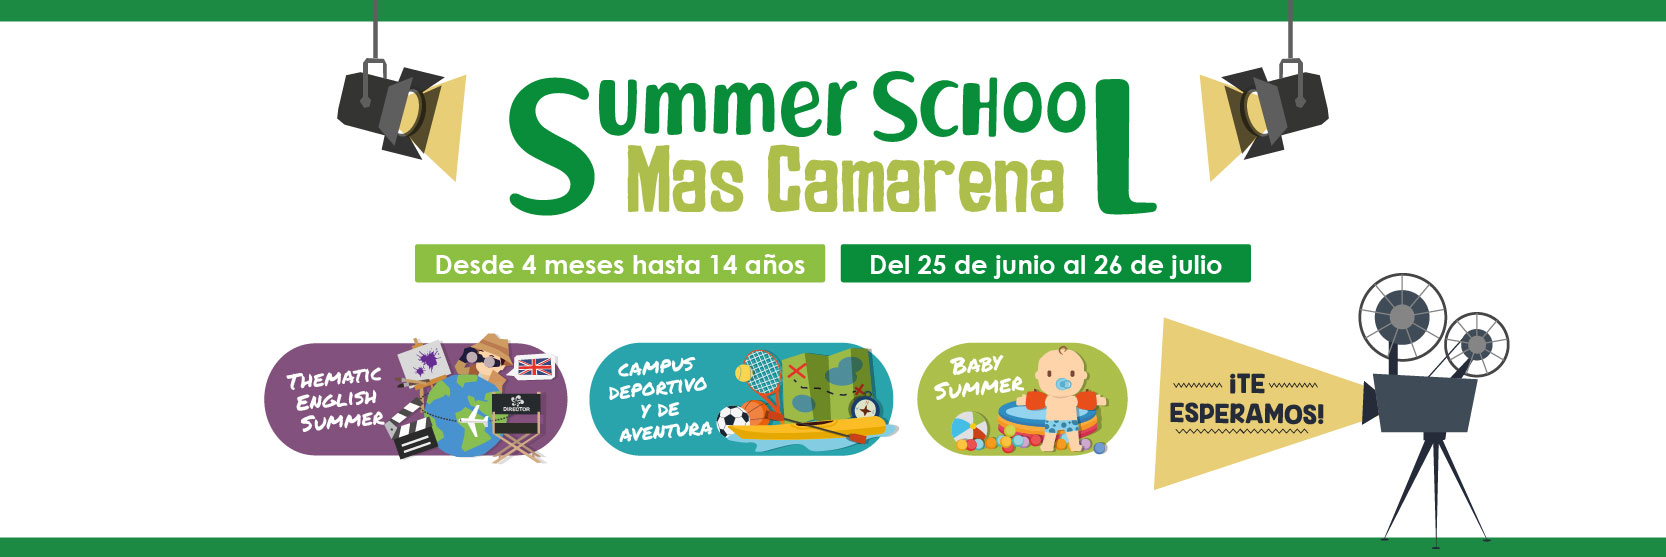 Slider Summer School Mas Camarena 2019